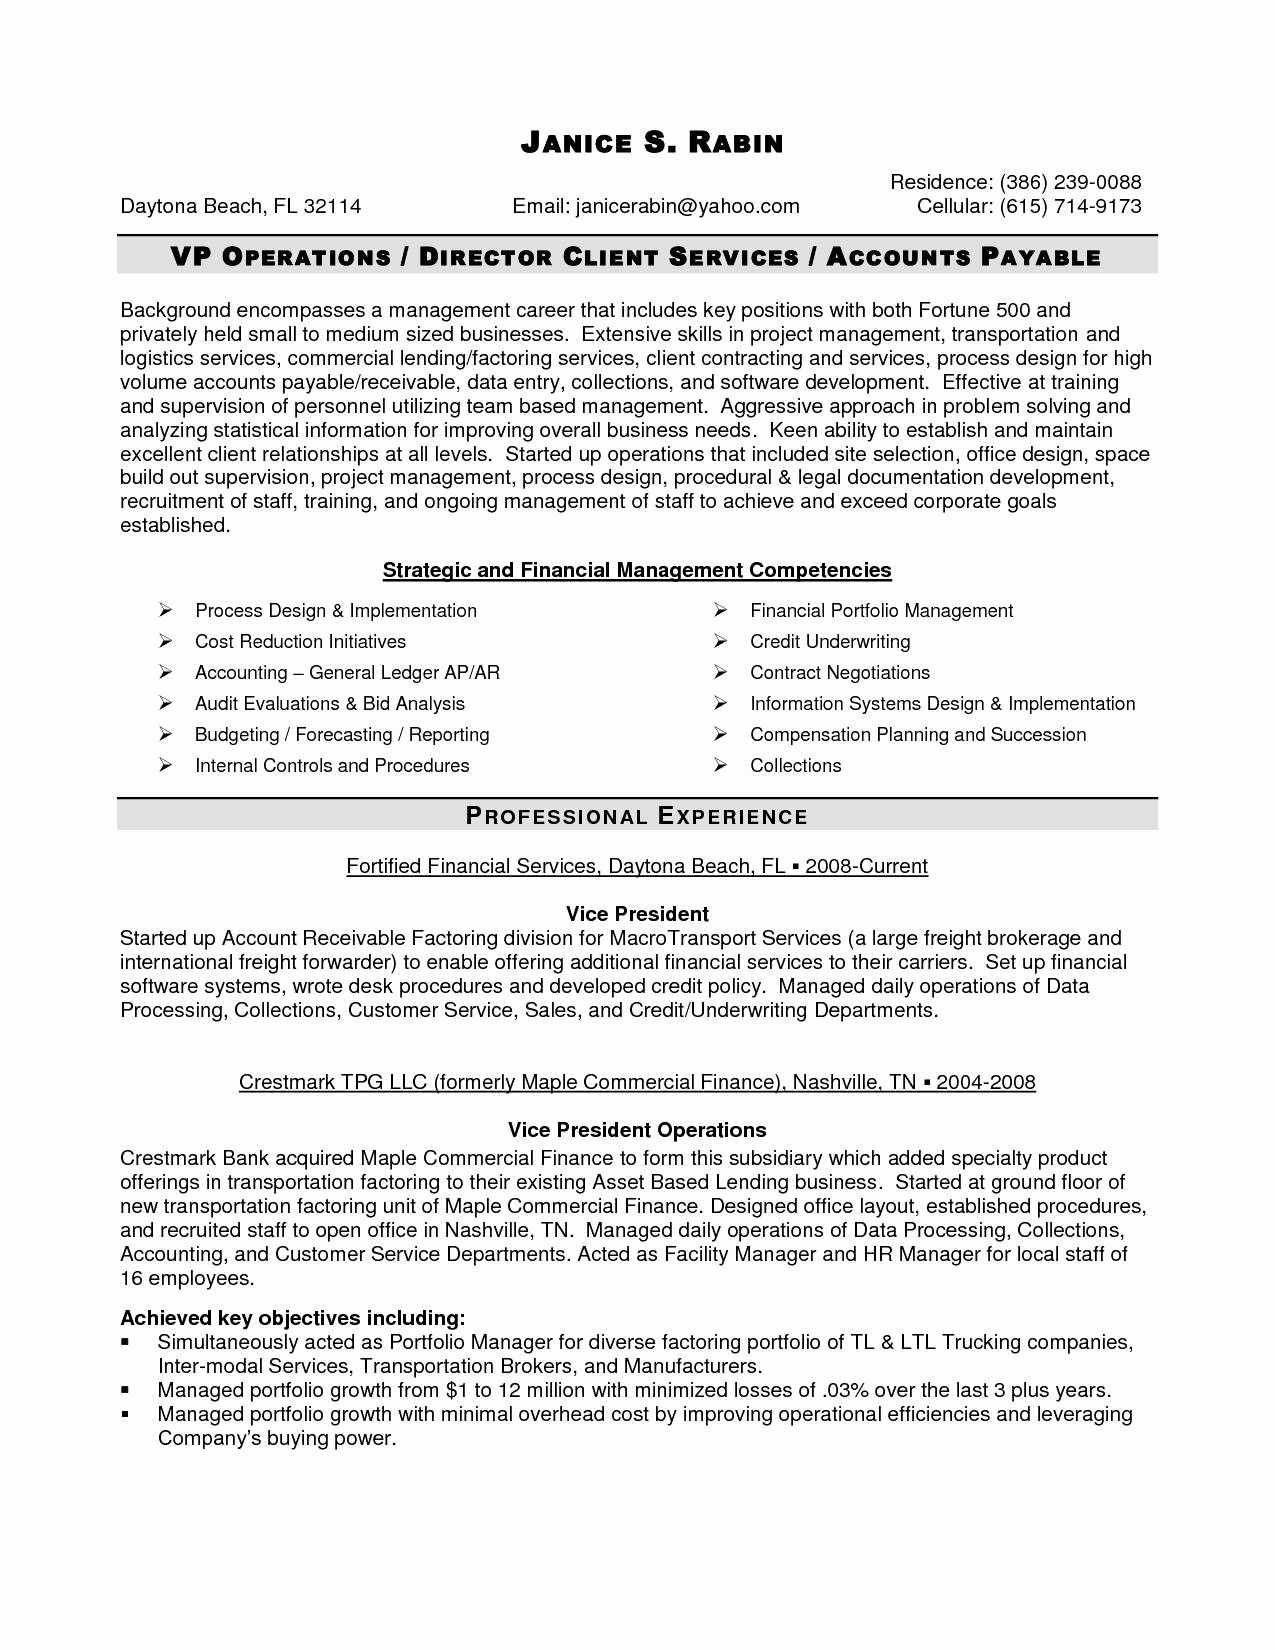 Succession Worksheet Answers